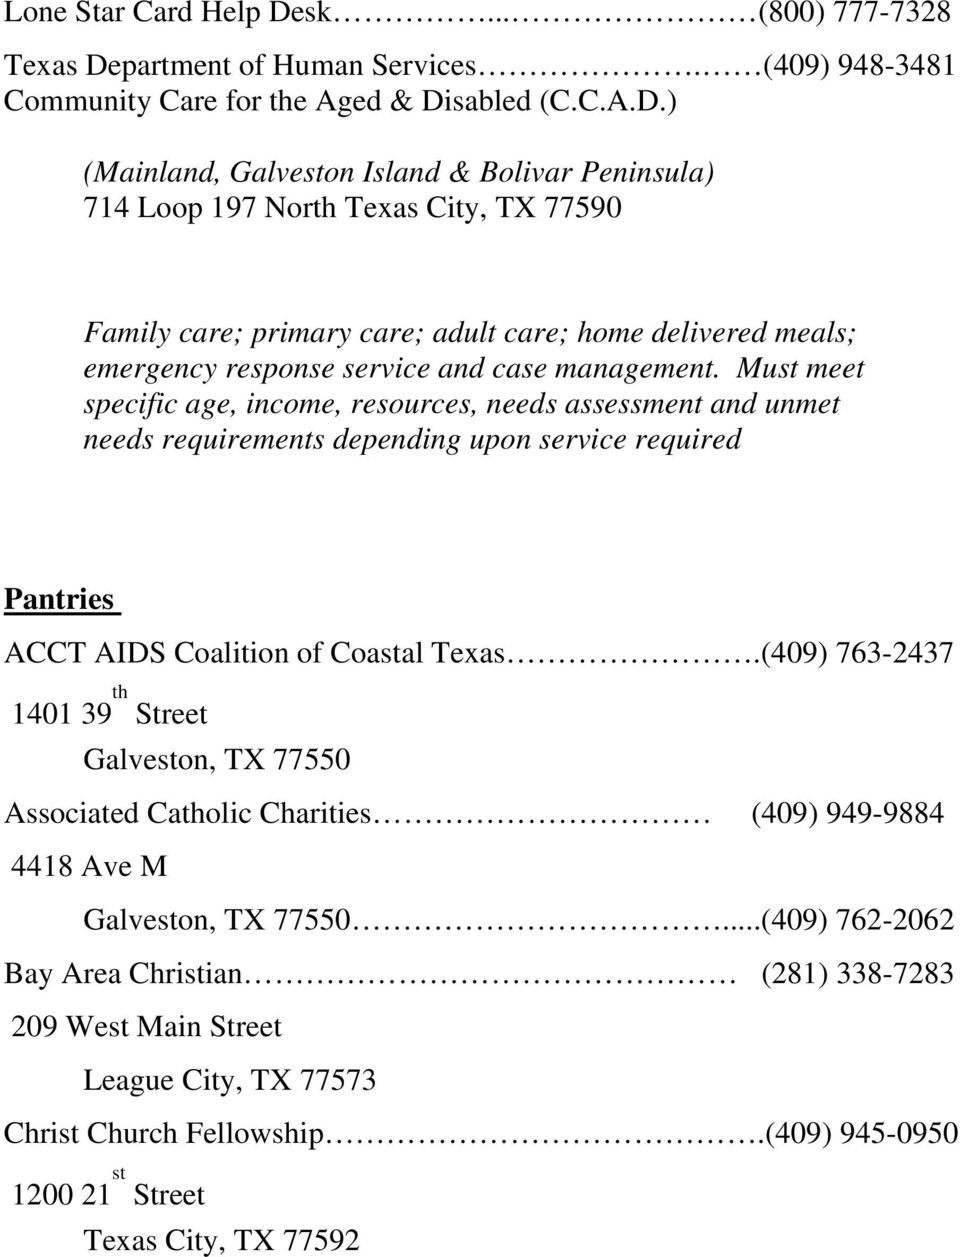 partment of Human Services. (409) 948-3481 Community Care for the Aged & Di